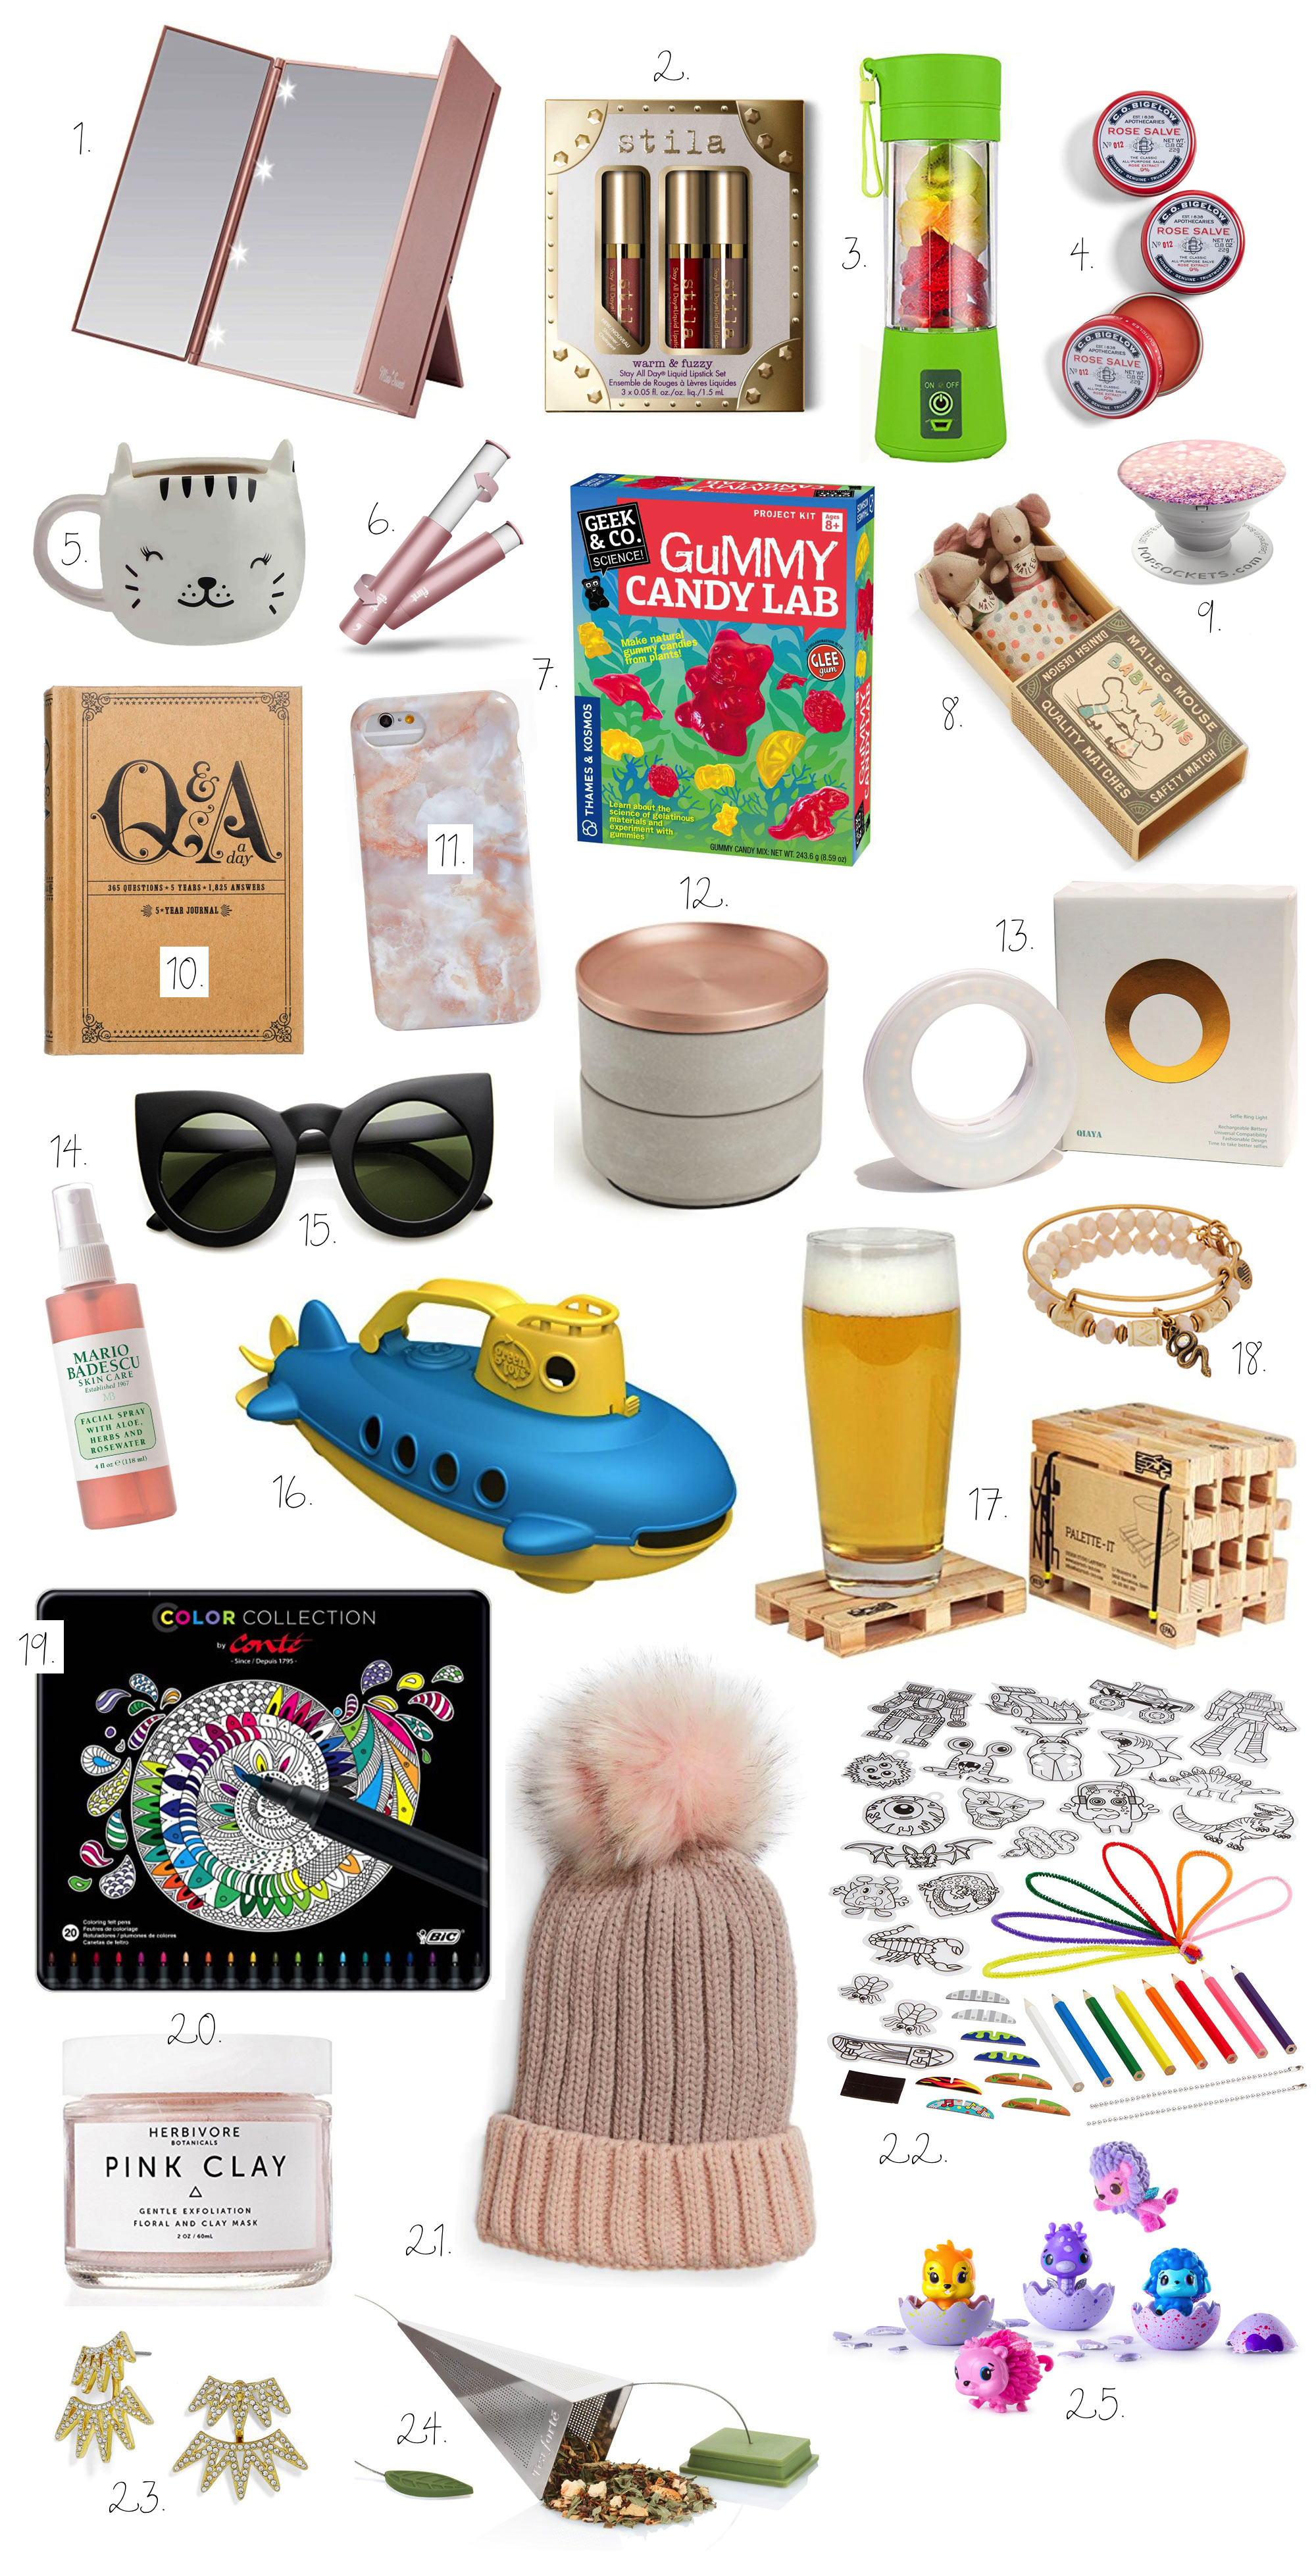 25 of the coolest and best stocking stuffers and gifts for eight nights of Chanukah - and they're all under $30 (with most under $20!) | glitterinc.com | @glitterinc - Gift Guide: 25 Stocking Stuffer Ideas + Ideas for Eight Nights of Chanukah (All Under $30) by North Carolina style blogger Glitter, Inc.